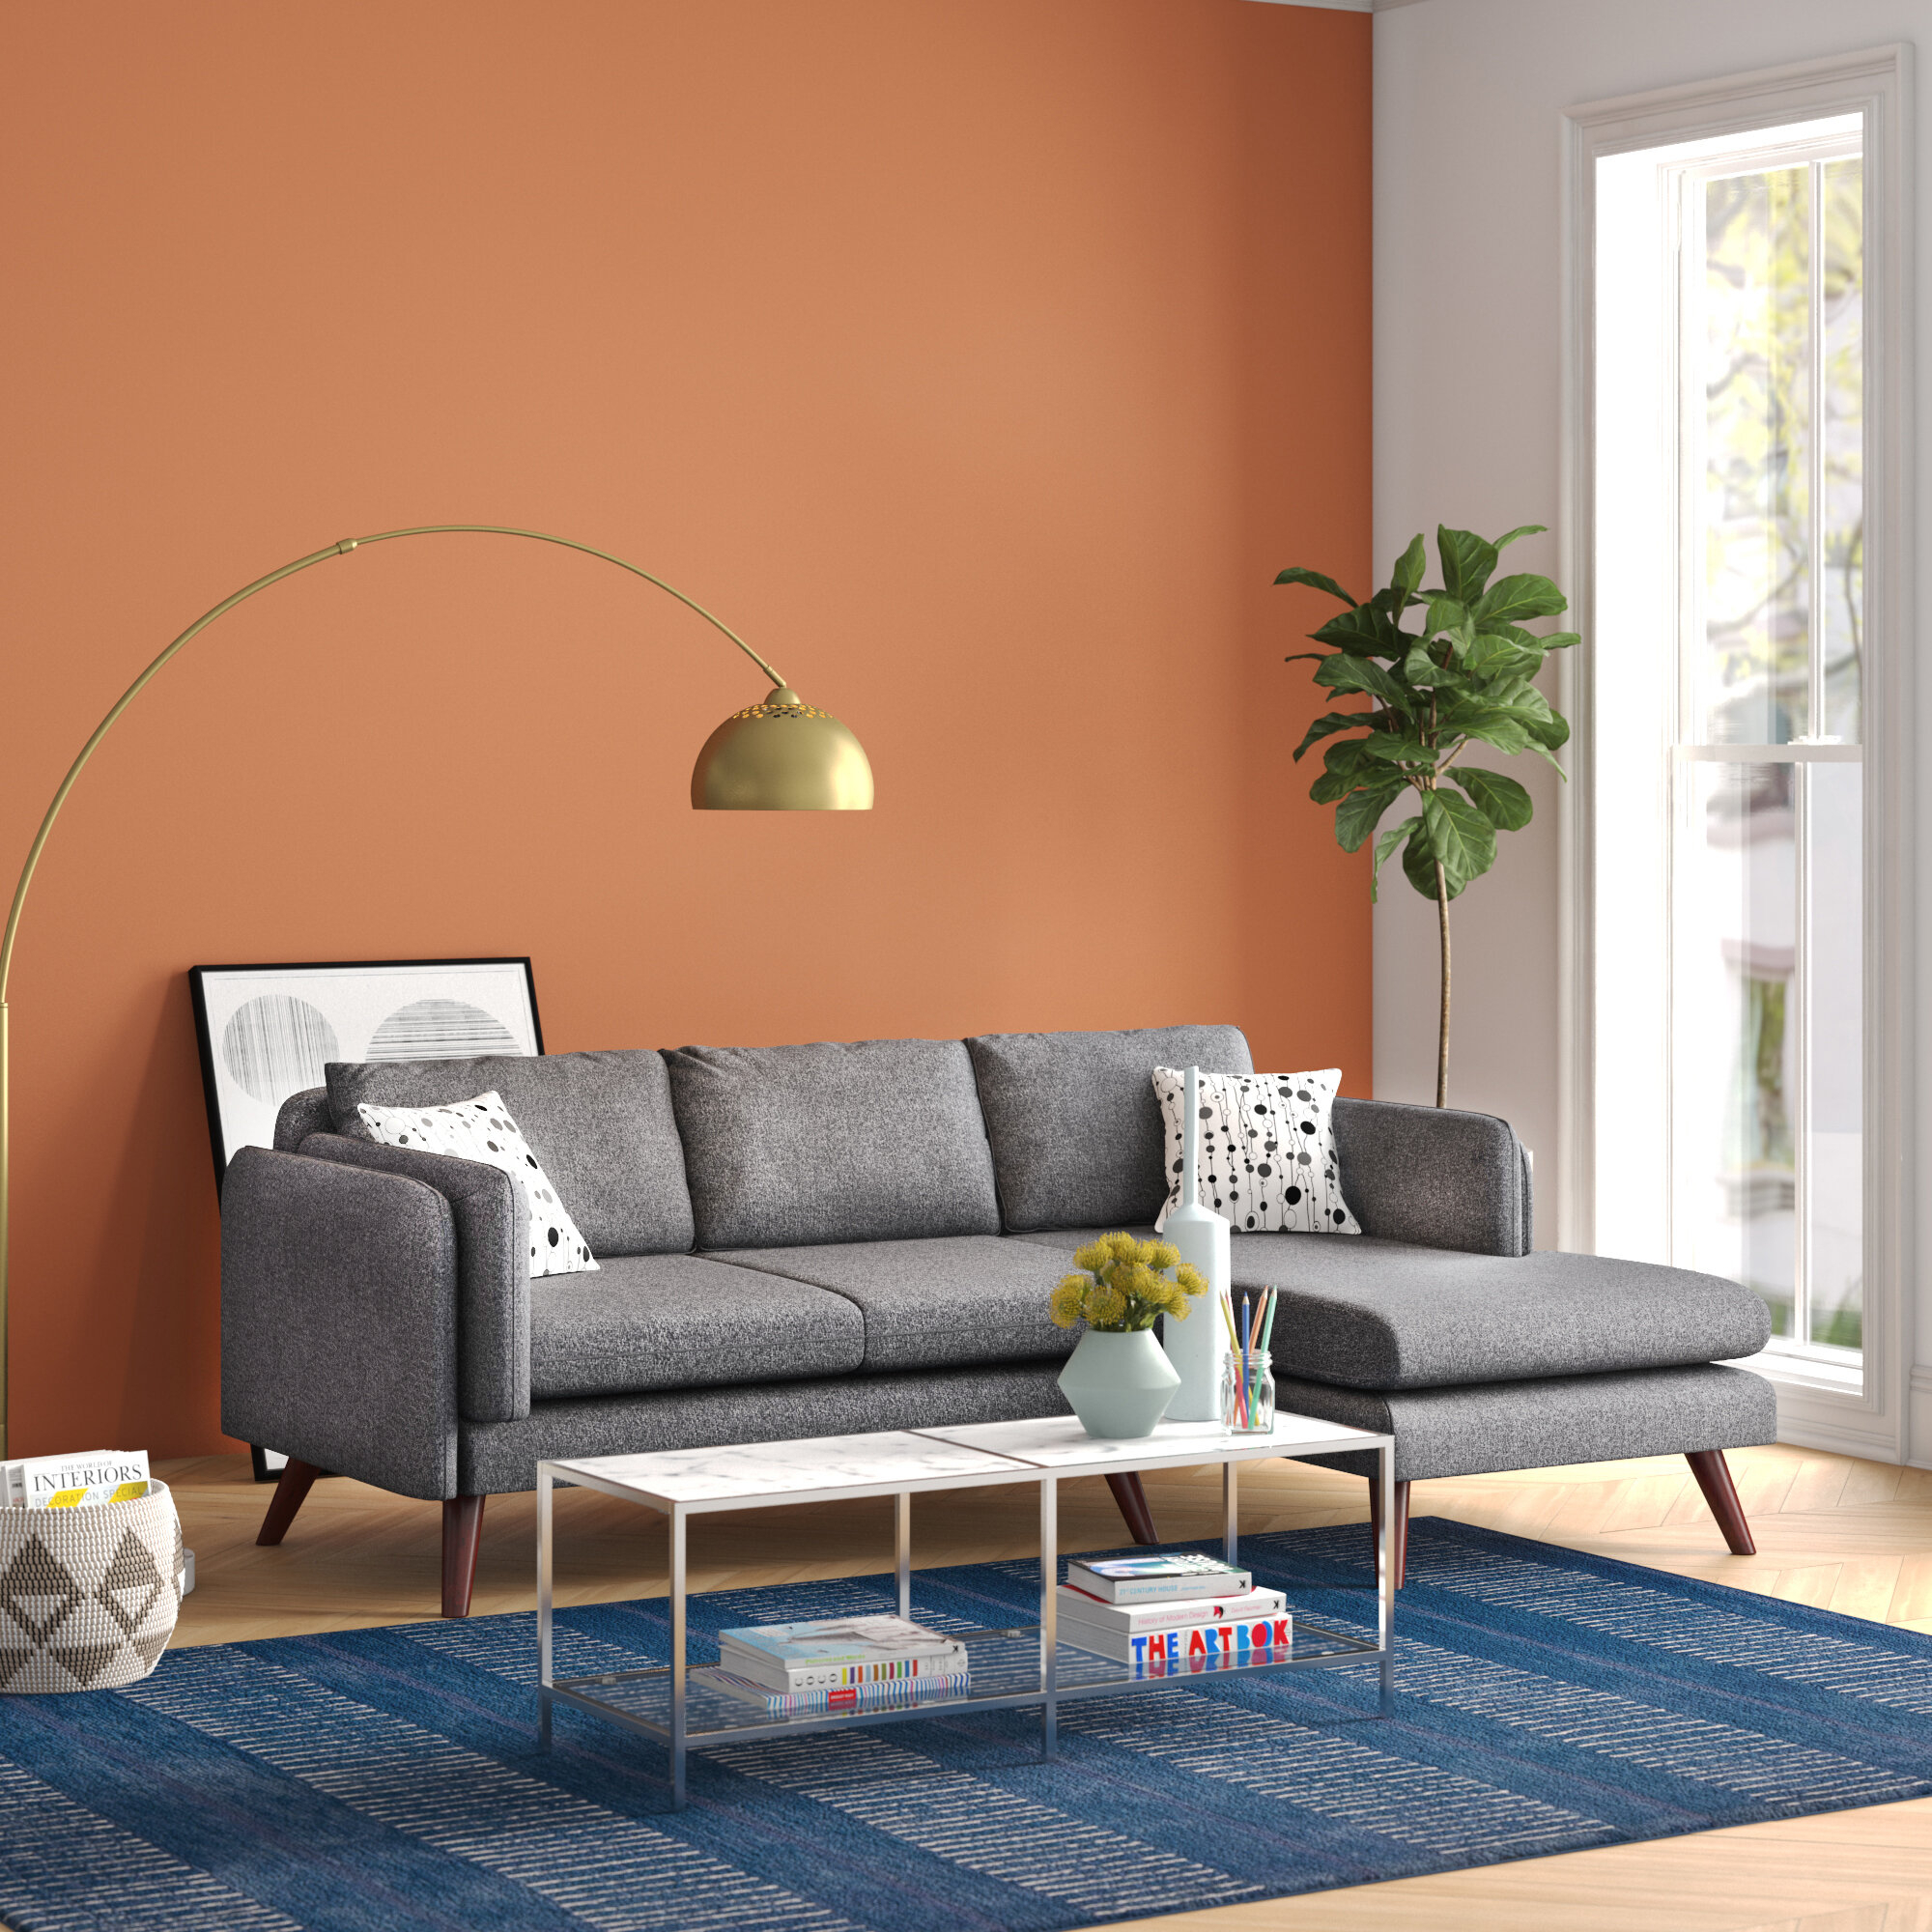 Picture of: Blue Sectional Sofa Ideas On Foter